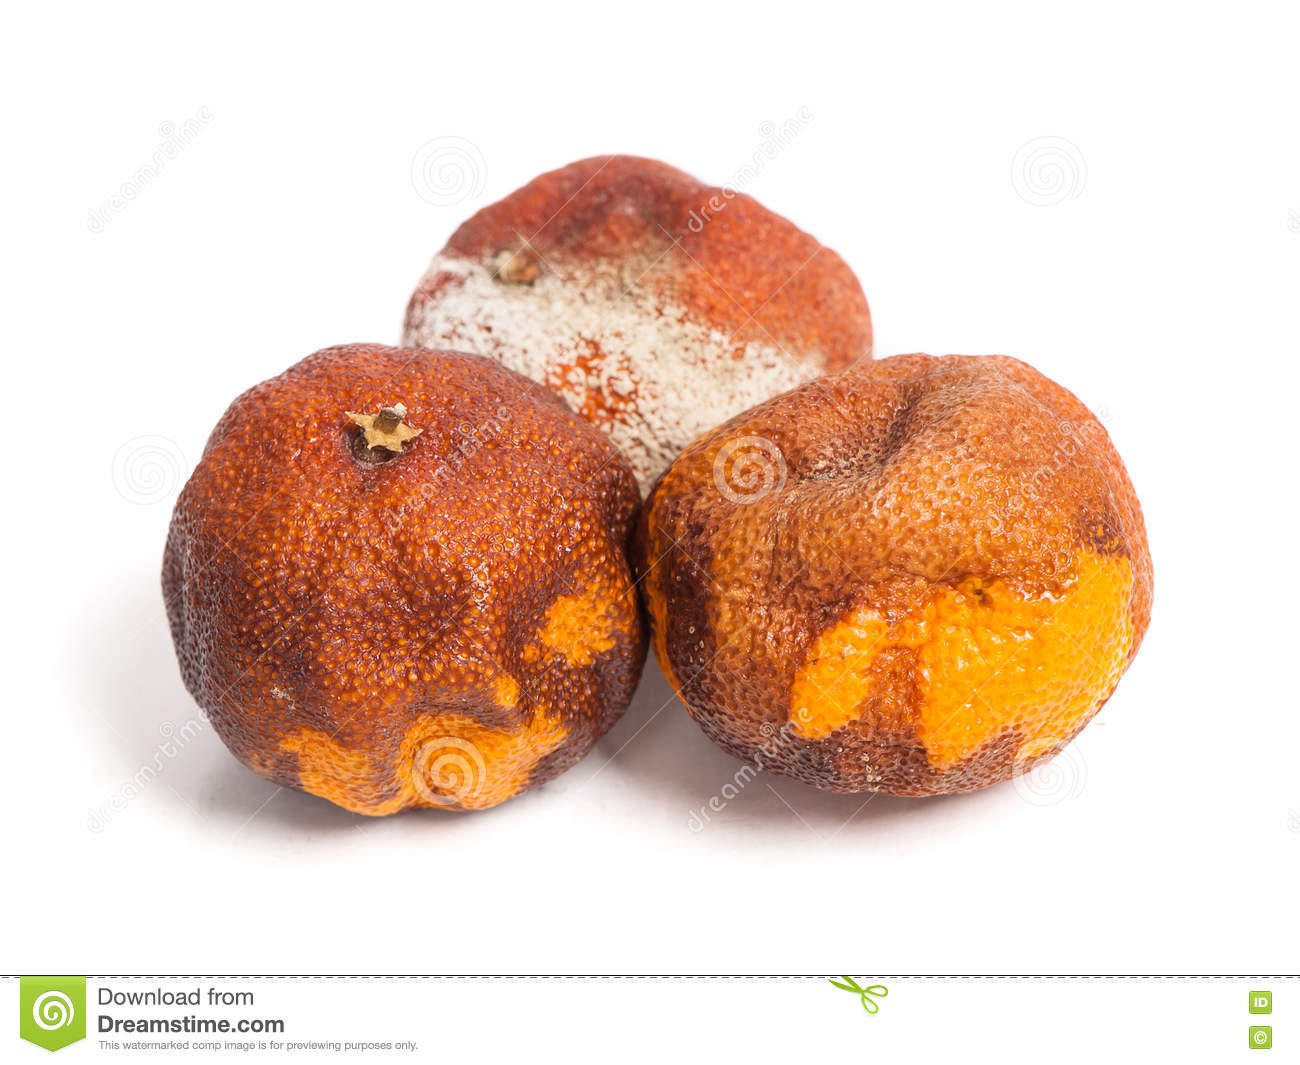 Rotten oranges royalty free stock image cartoondealer for Musty odor definition